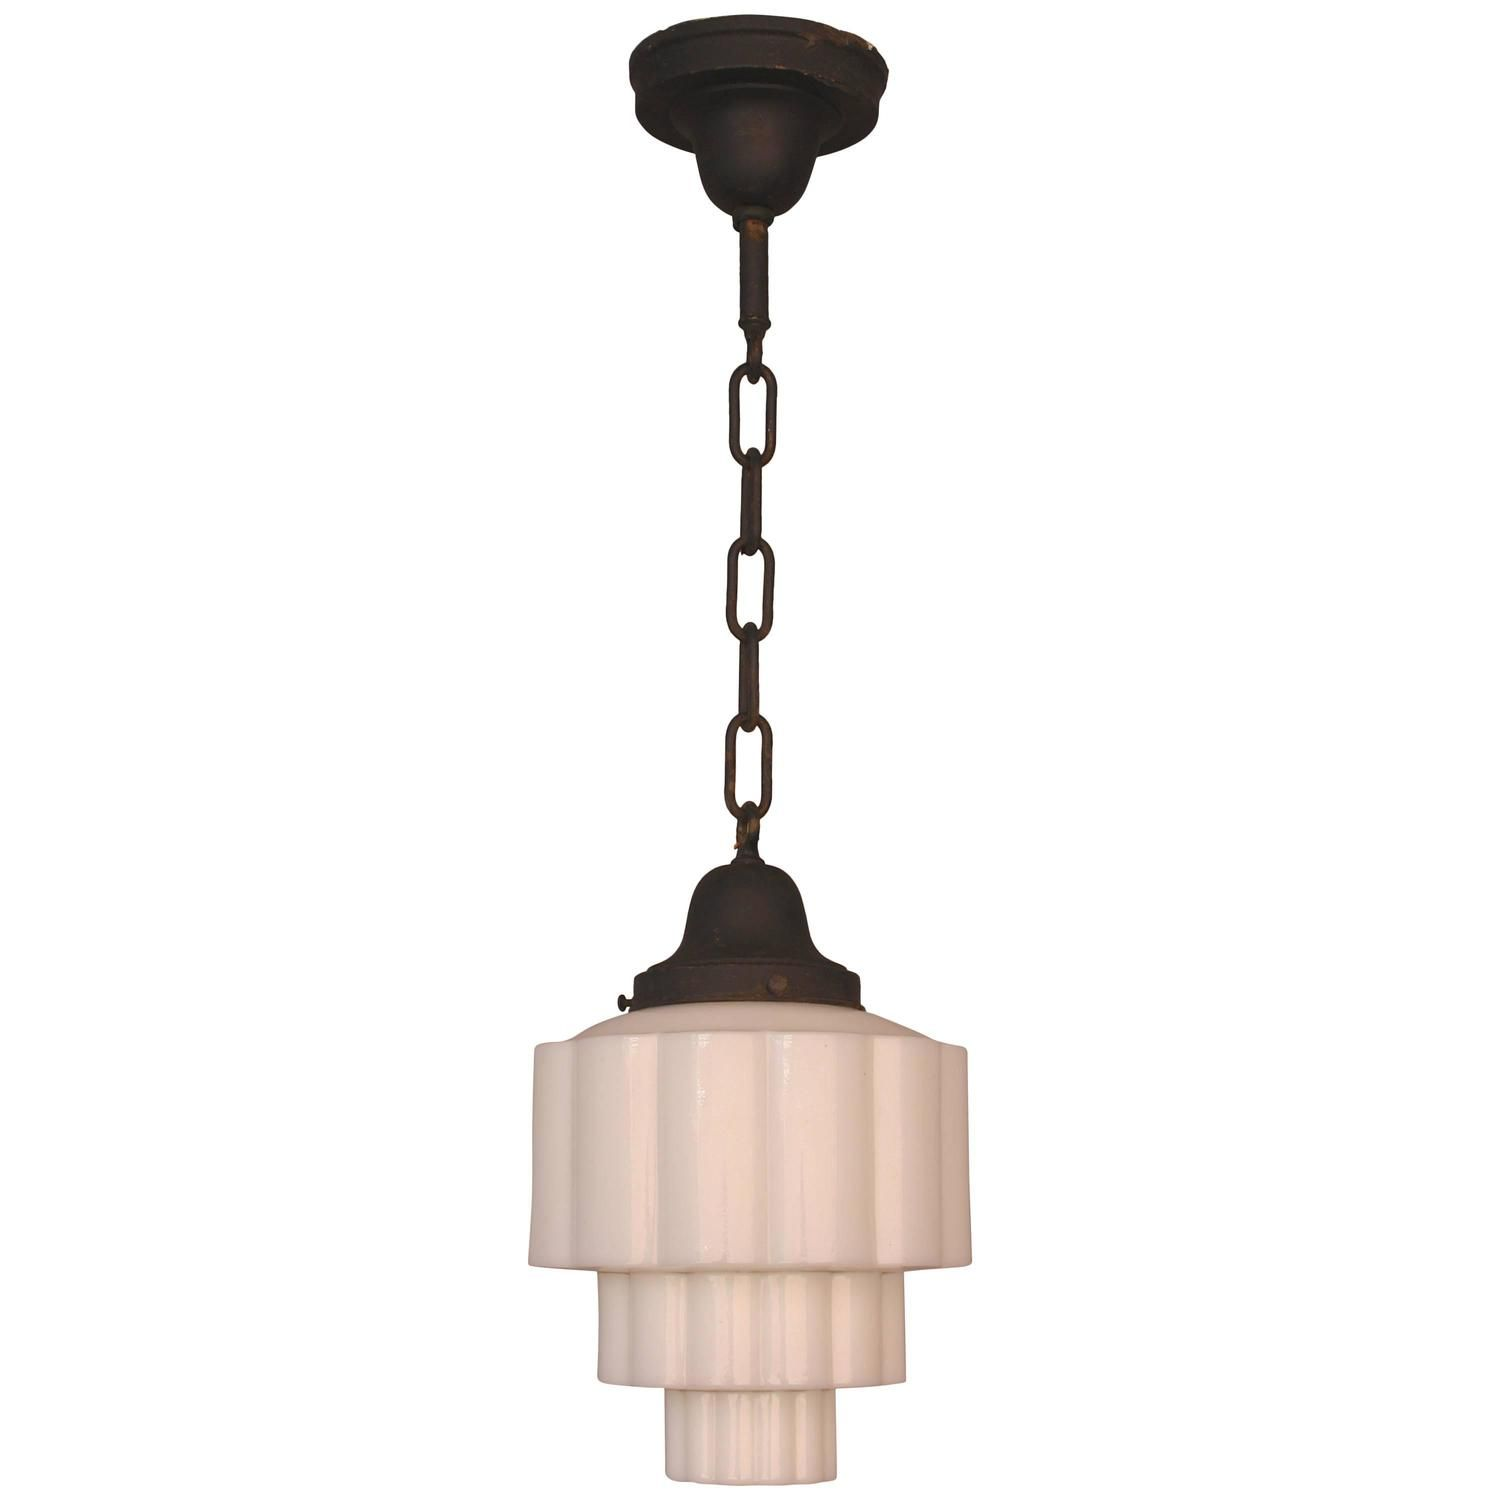 Art Deco Skyscraper Milk Glass Pendant Light, 1930s | See More Antique And  Modern Chandeliers Awesome Design